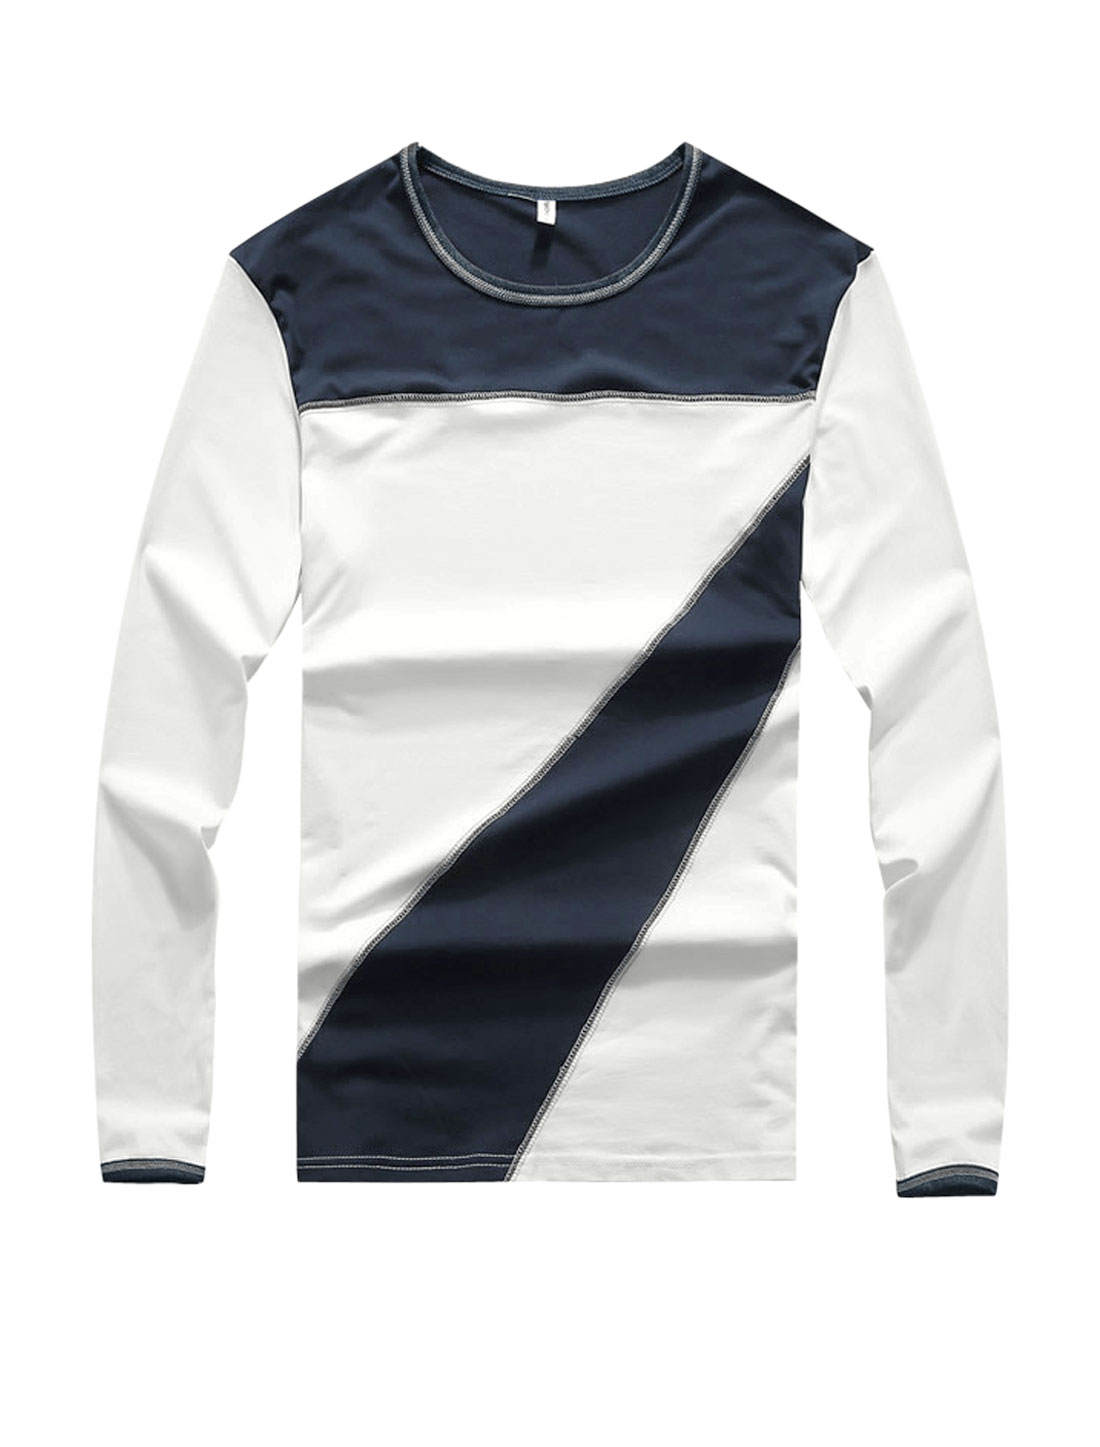 Men Crew Neck Long Sleeves Color Block Slim Fit T-Shirt White S